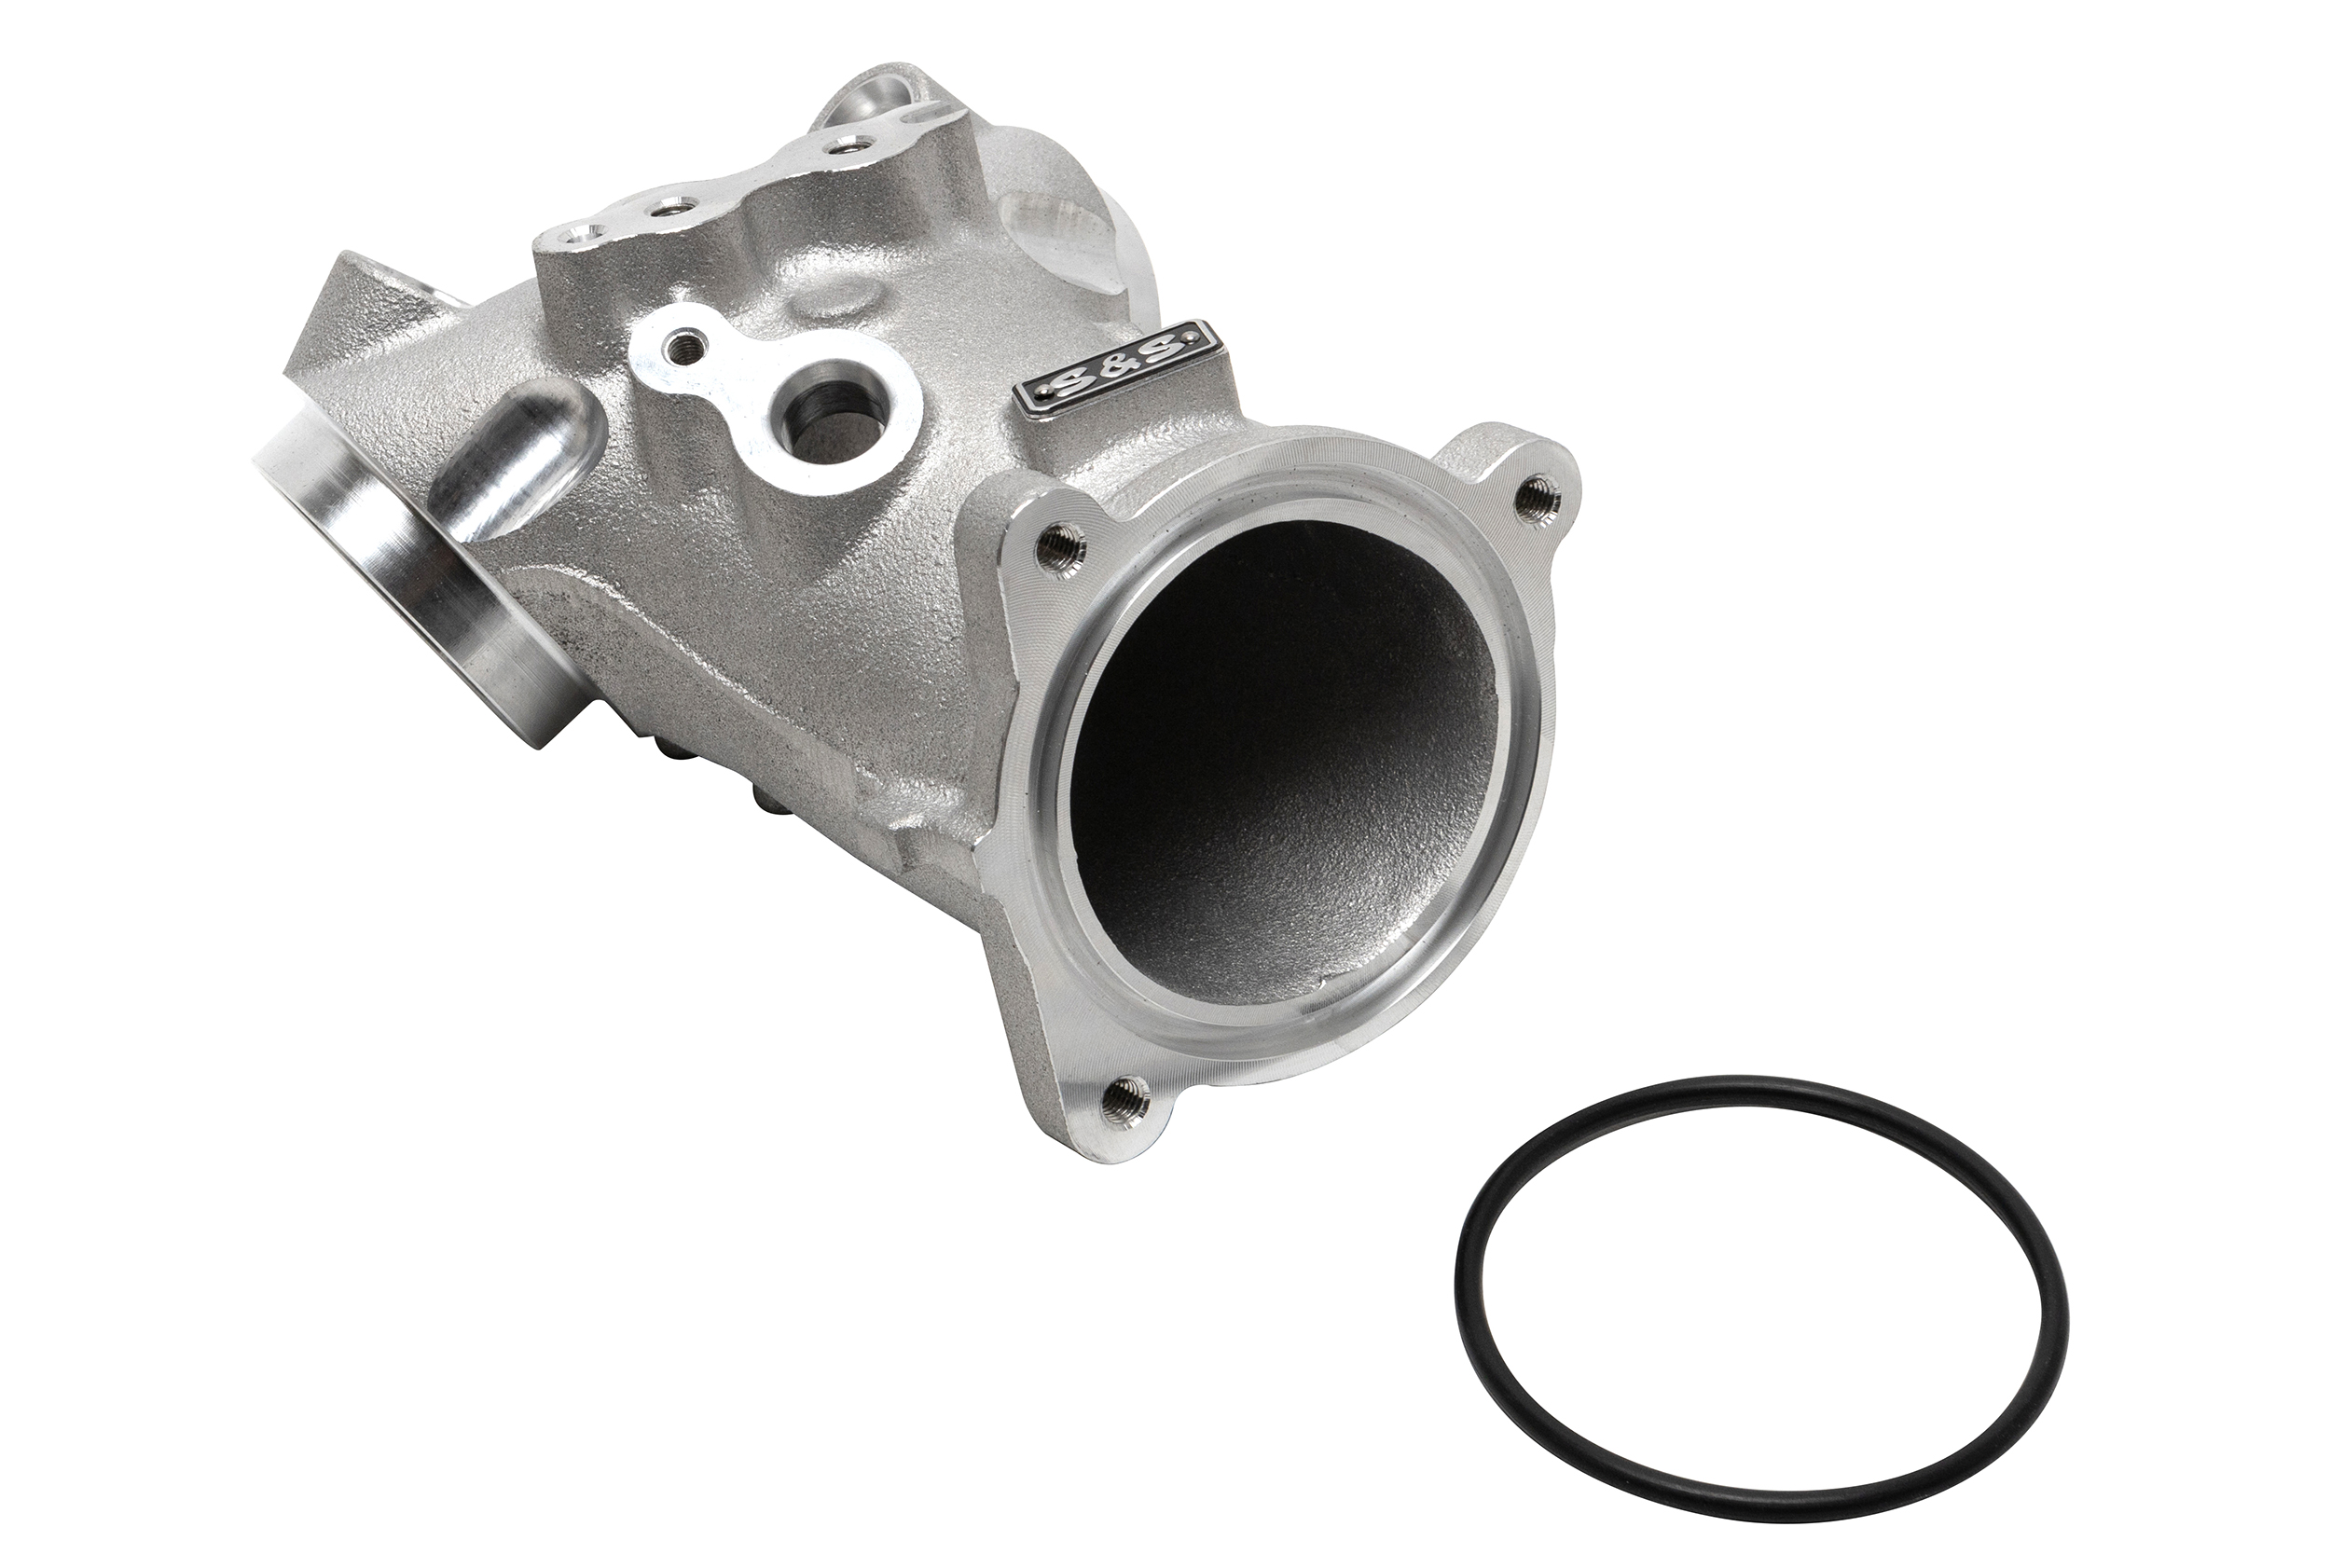 210419 NEW - S&S High Performance Manifold for the M8 (2)